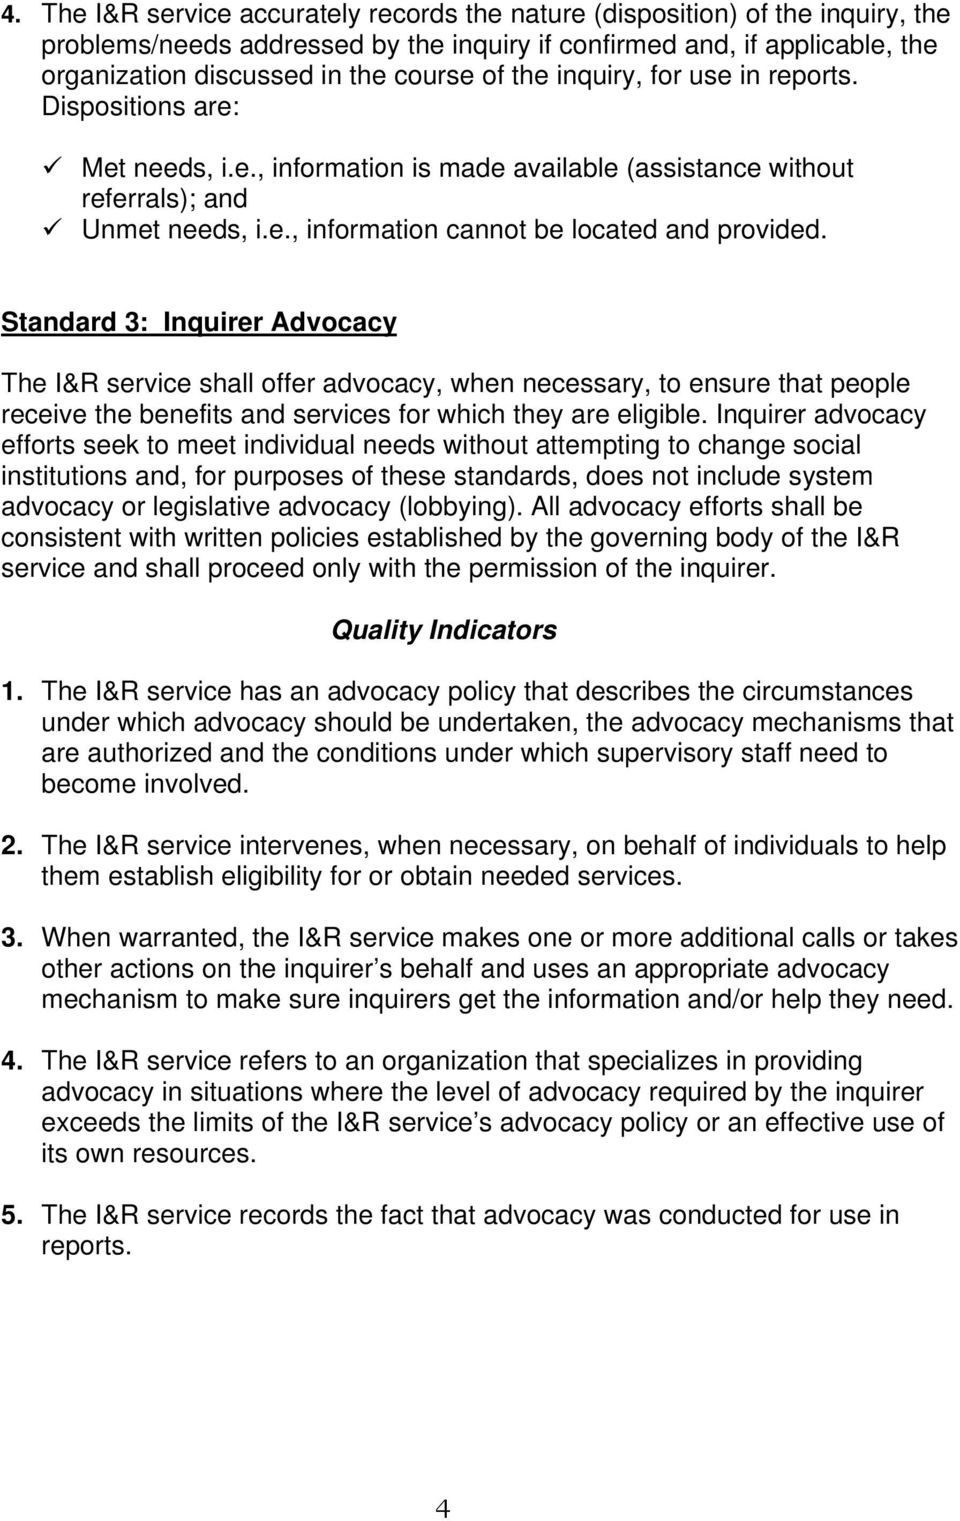 Standard 3: Inquirer Advocacy The I&R service shall offer advocacy, when necessary, to ensure that people receive the benefits and services for which they are eligible.